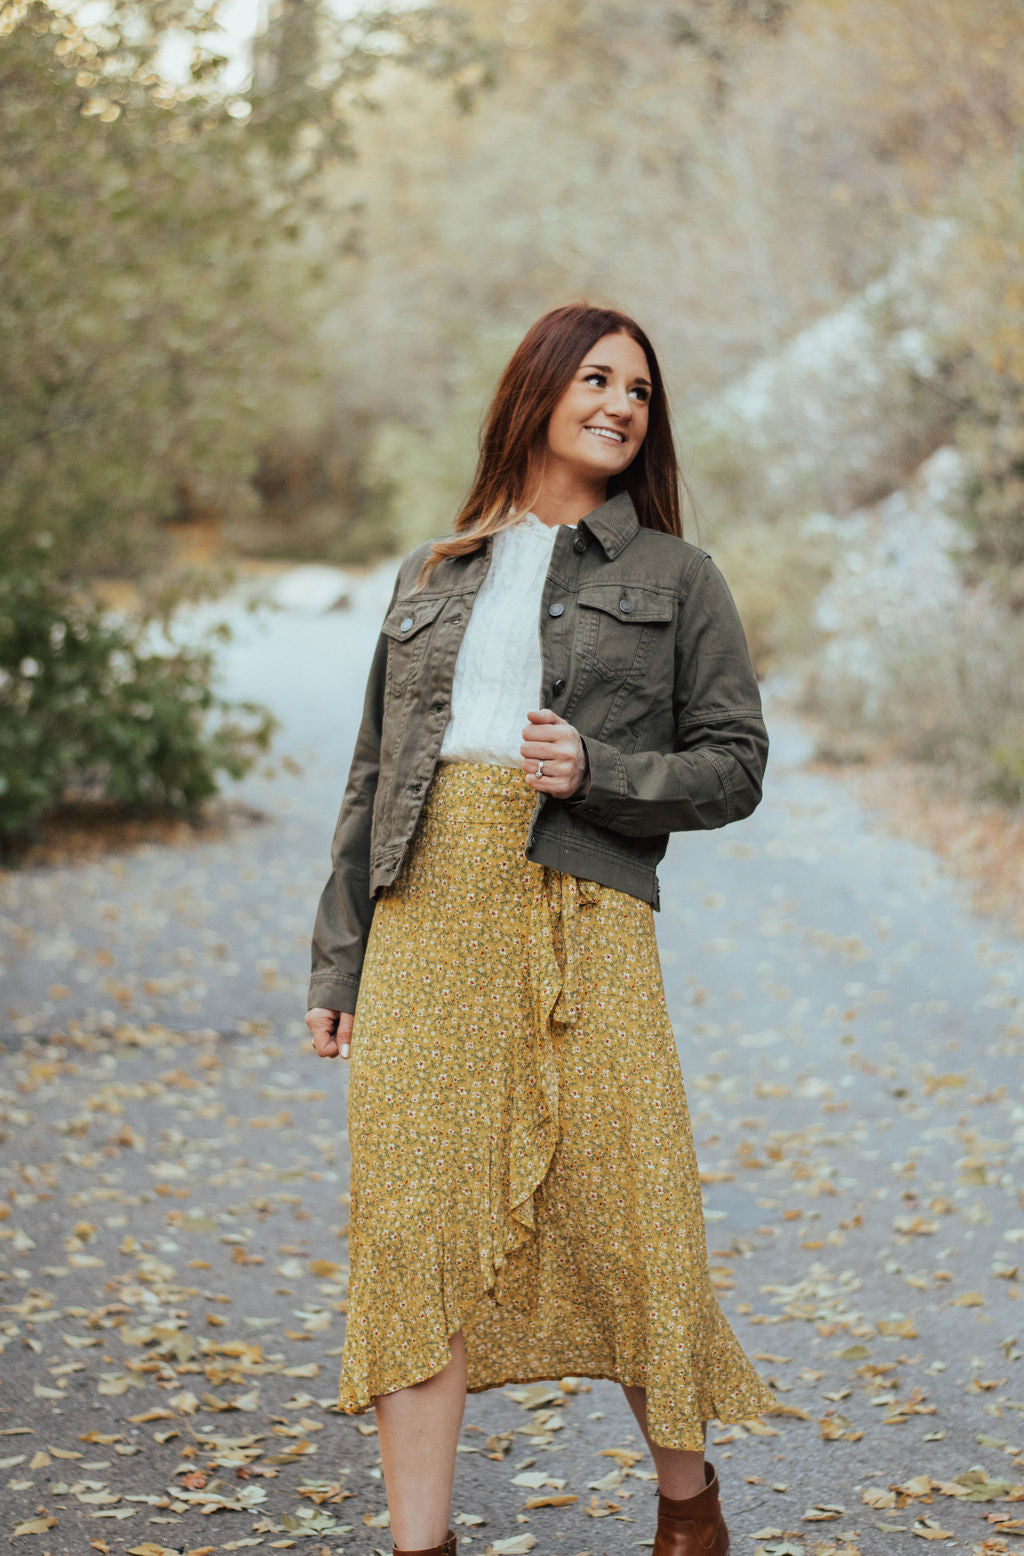 Floral Wrap Skirt in Mustard